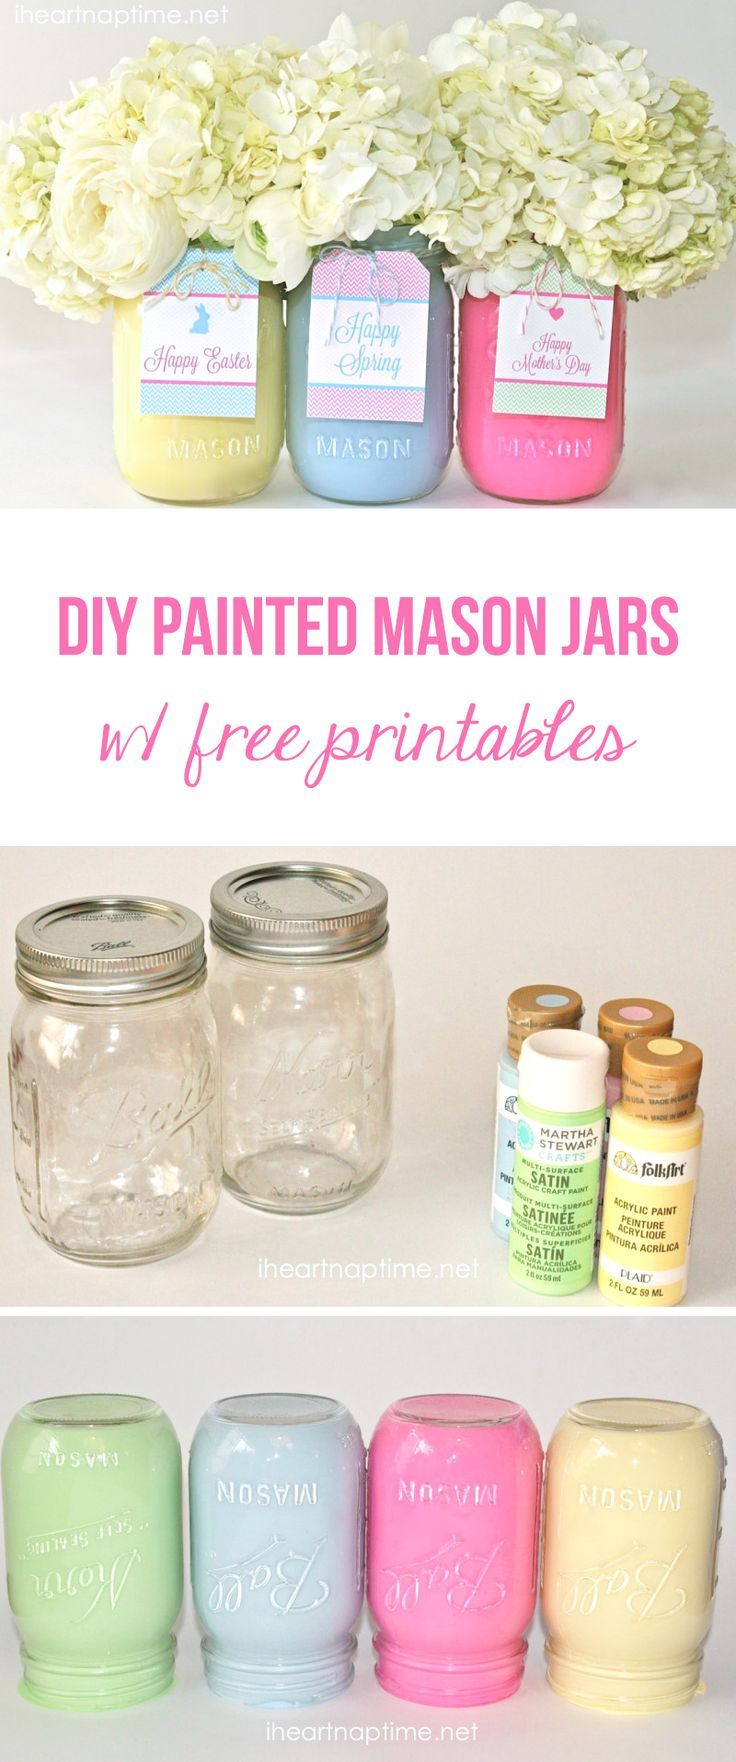 DIY painted mason jars with free tags -these make a cute and inexpensive gift for Easter or Mother's Day!